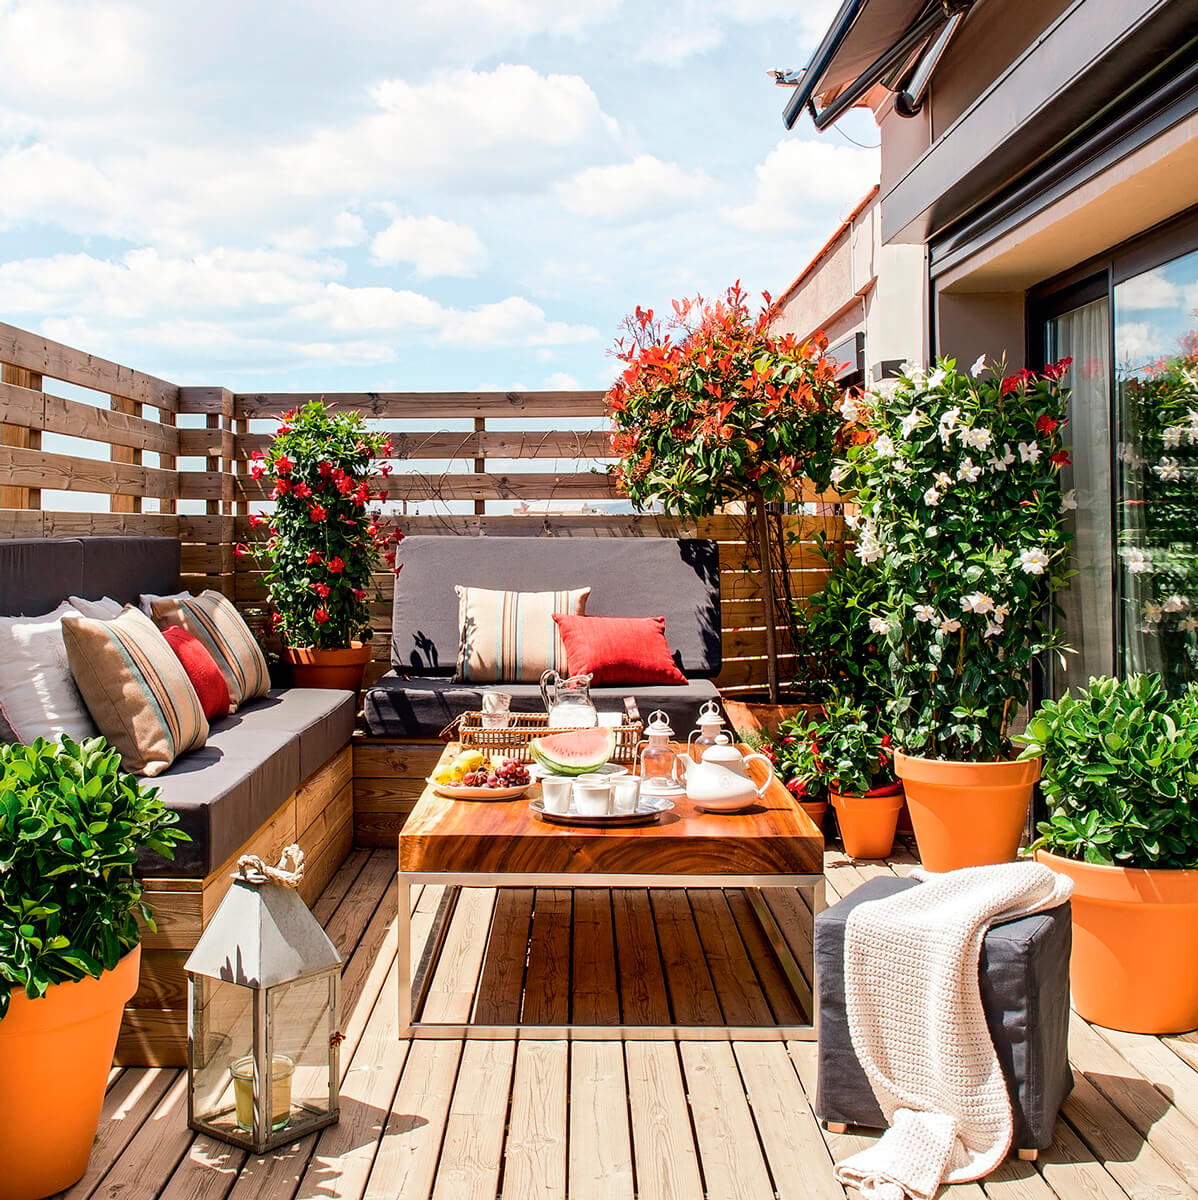 10 ideas para decorar terrazas y balcones handfie diy for Muebles de exterior para balcon